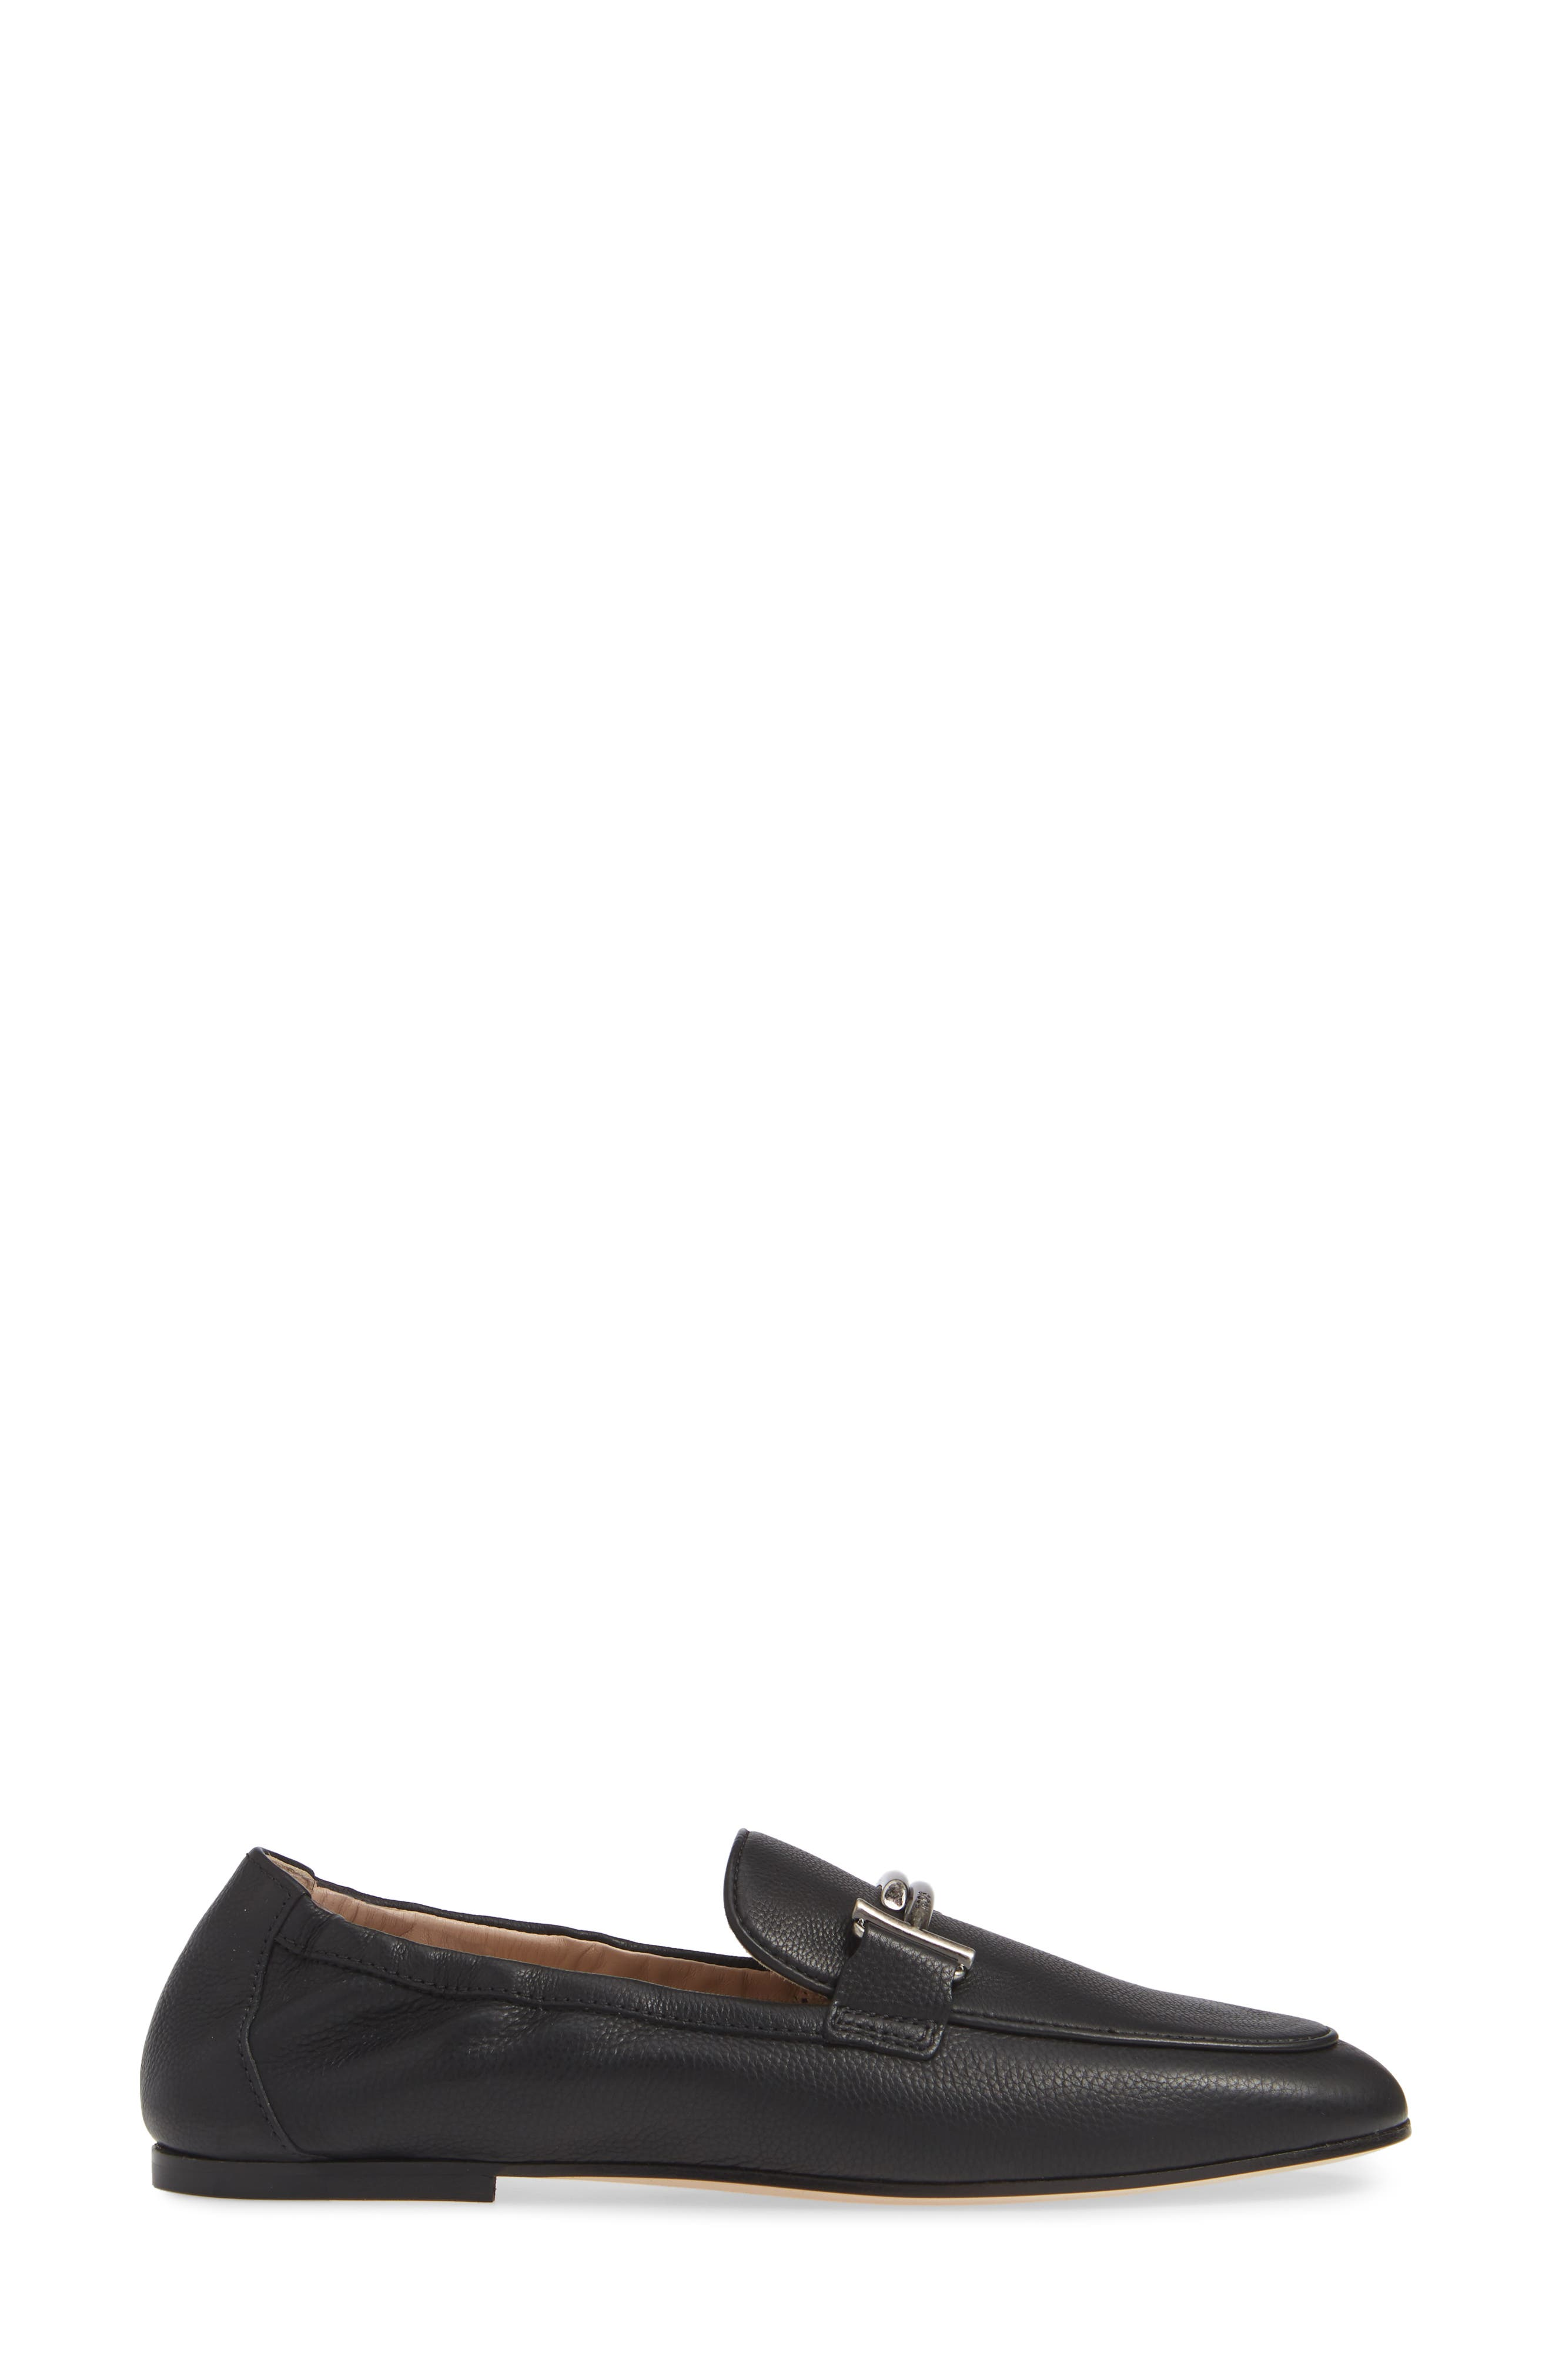 Double T Loafer,                             Alternate thumbnail 3, color,                             BLACK LEATHER